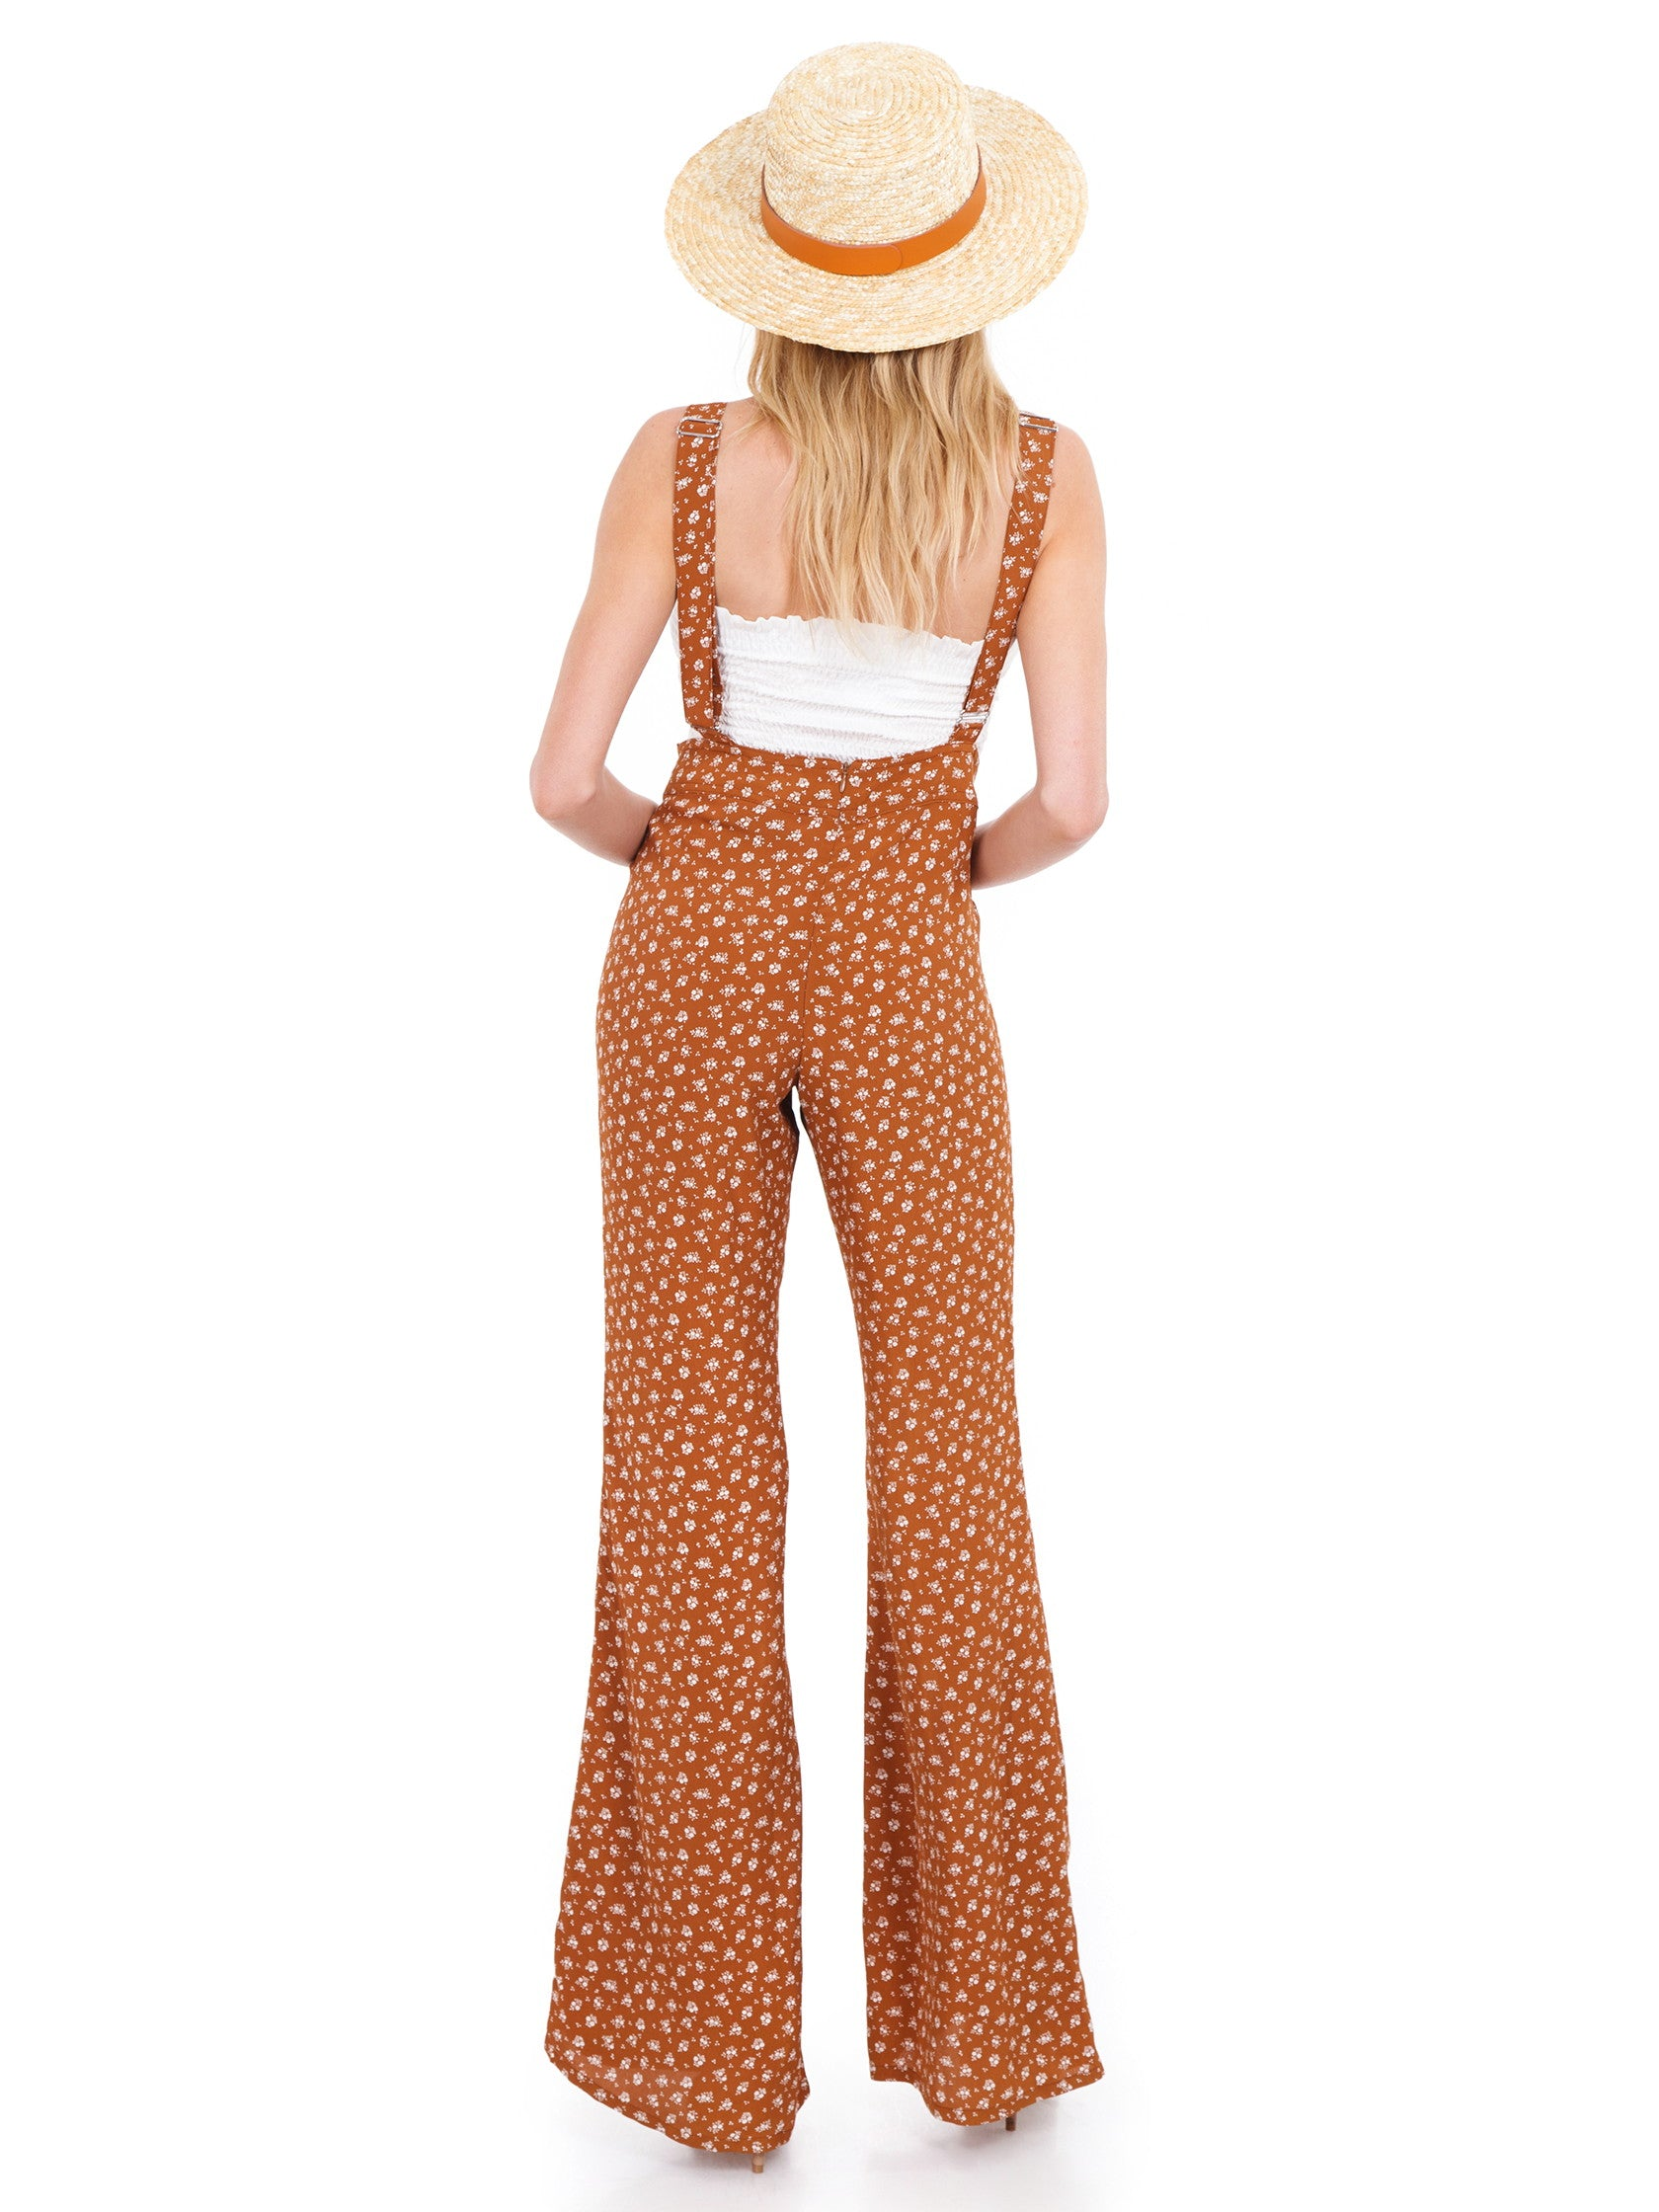 Women wearing a jumpsuit rental from Blue Life called Georgina May Overall